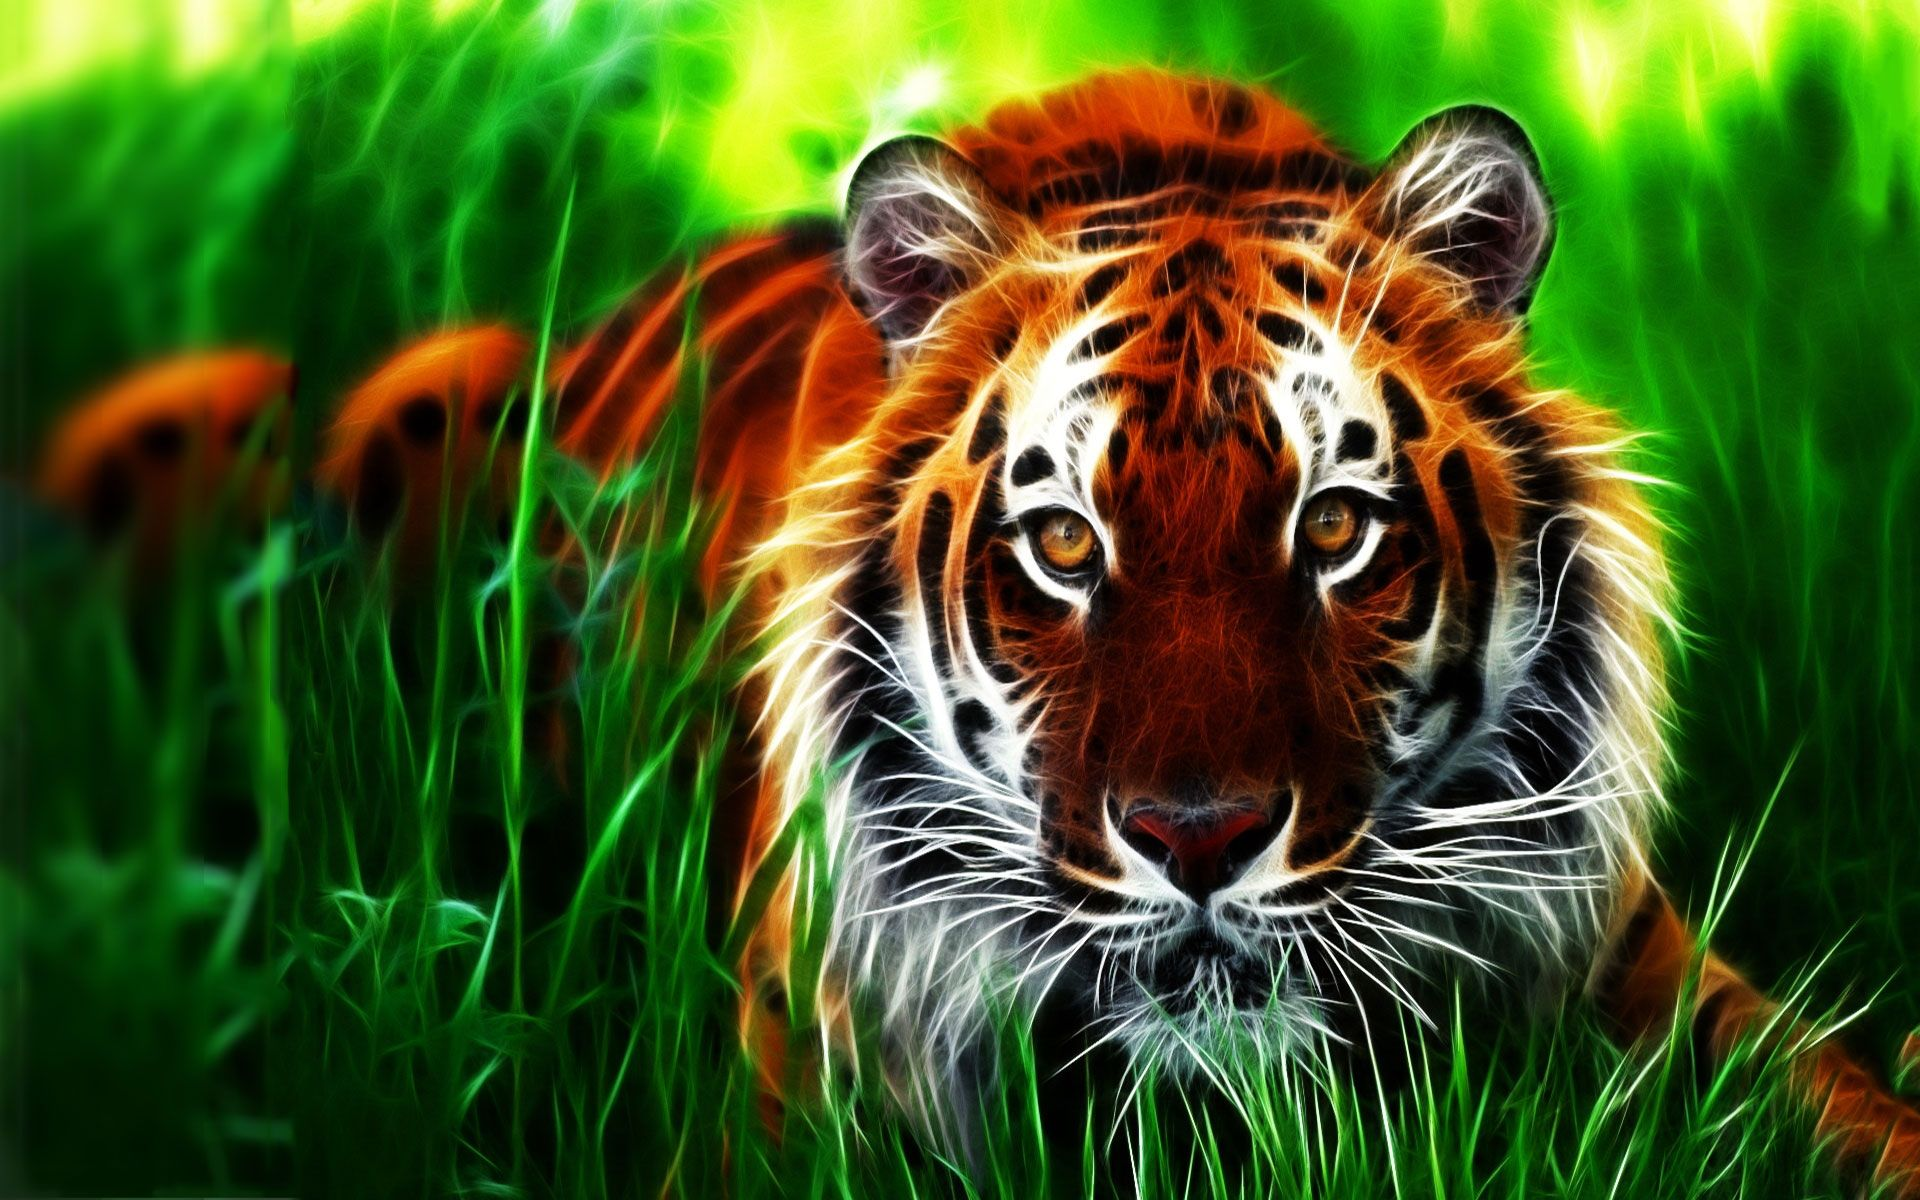 Best 3d animal wallpaper hd animated animal wallpaper - Best animal wallpaper download ...